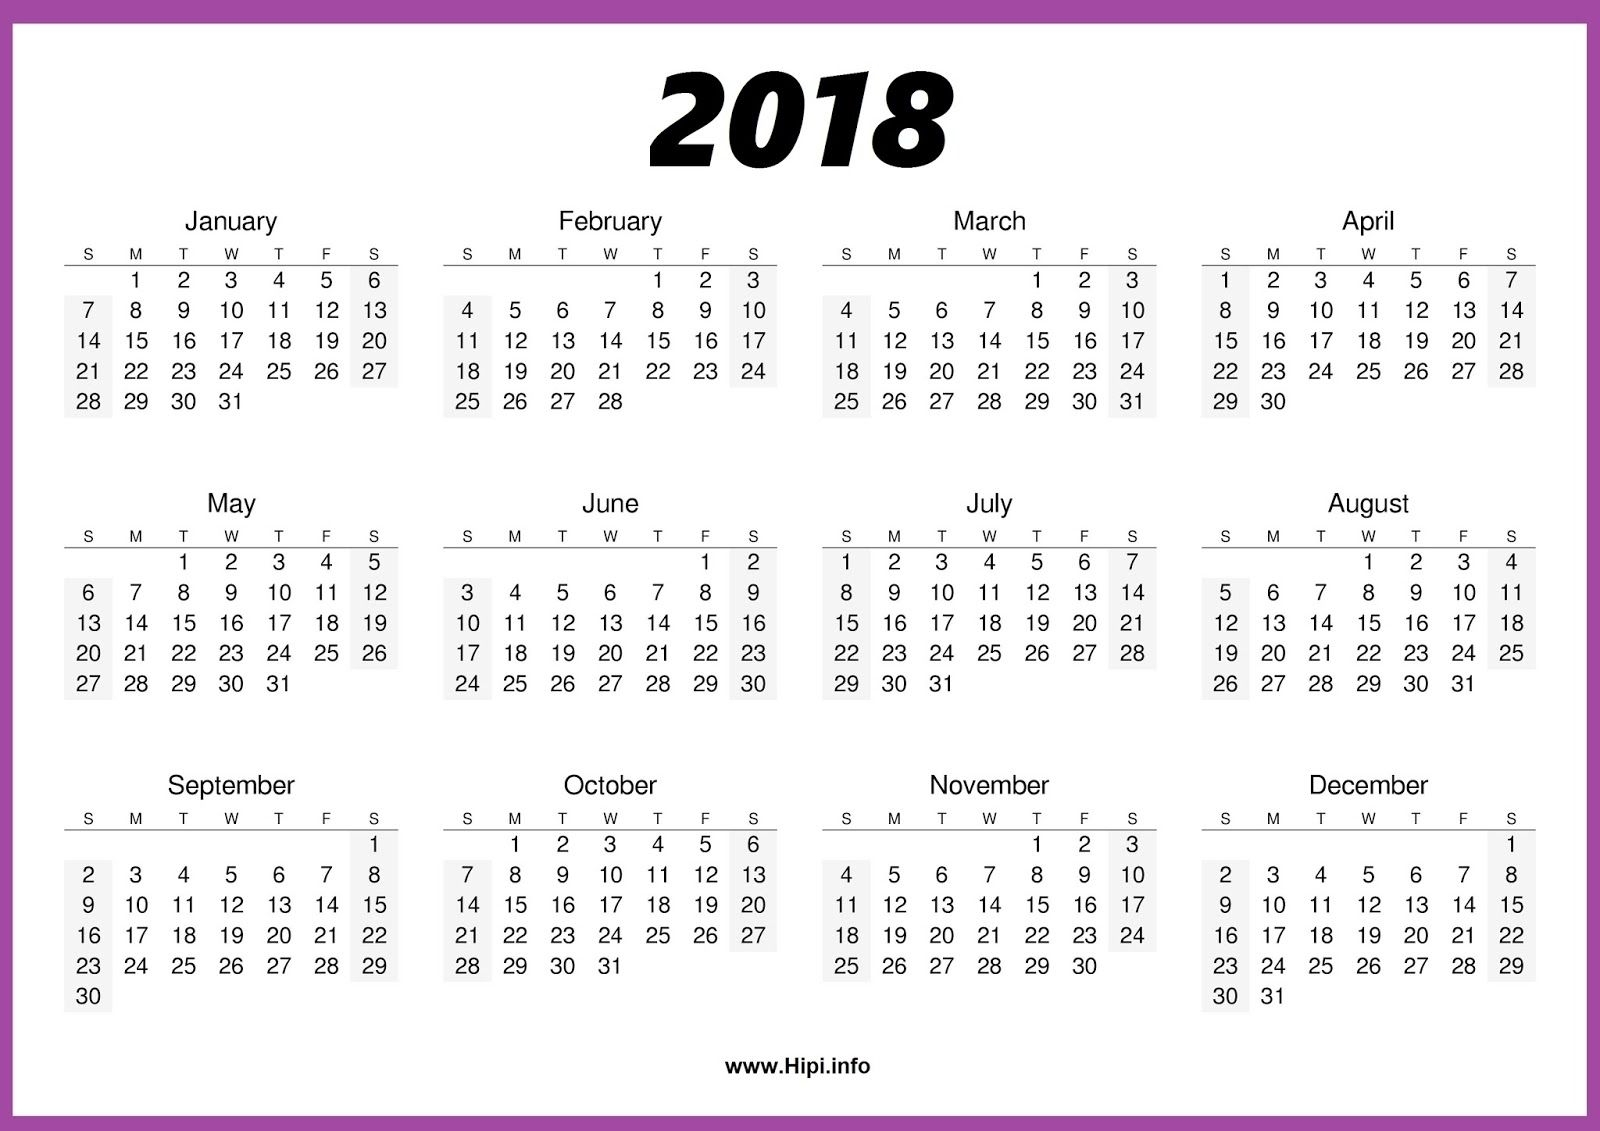 2018 Calendar One Page | November Calendar | Blank Calendar Template pertaining to Monthly Calendar On One Page